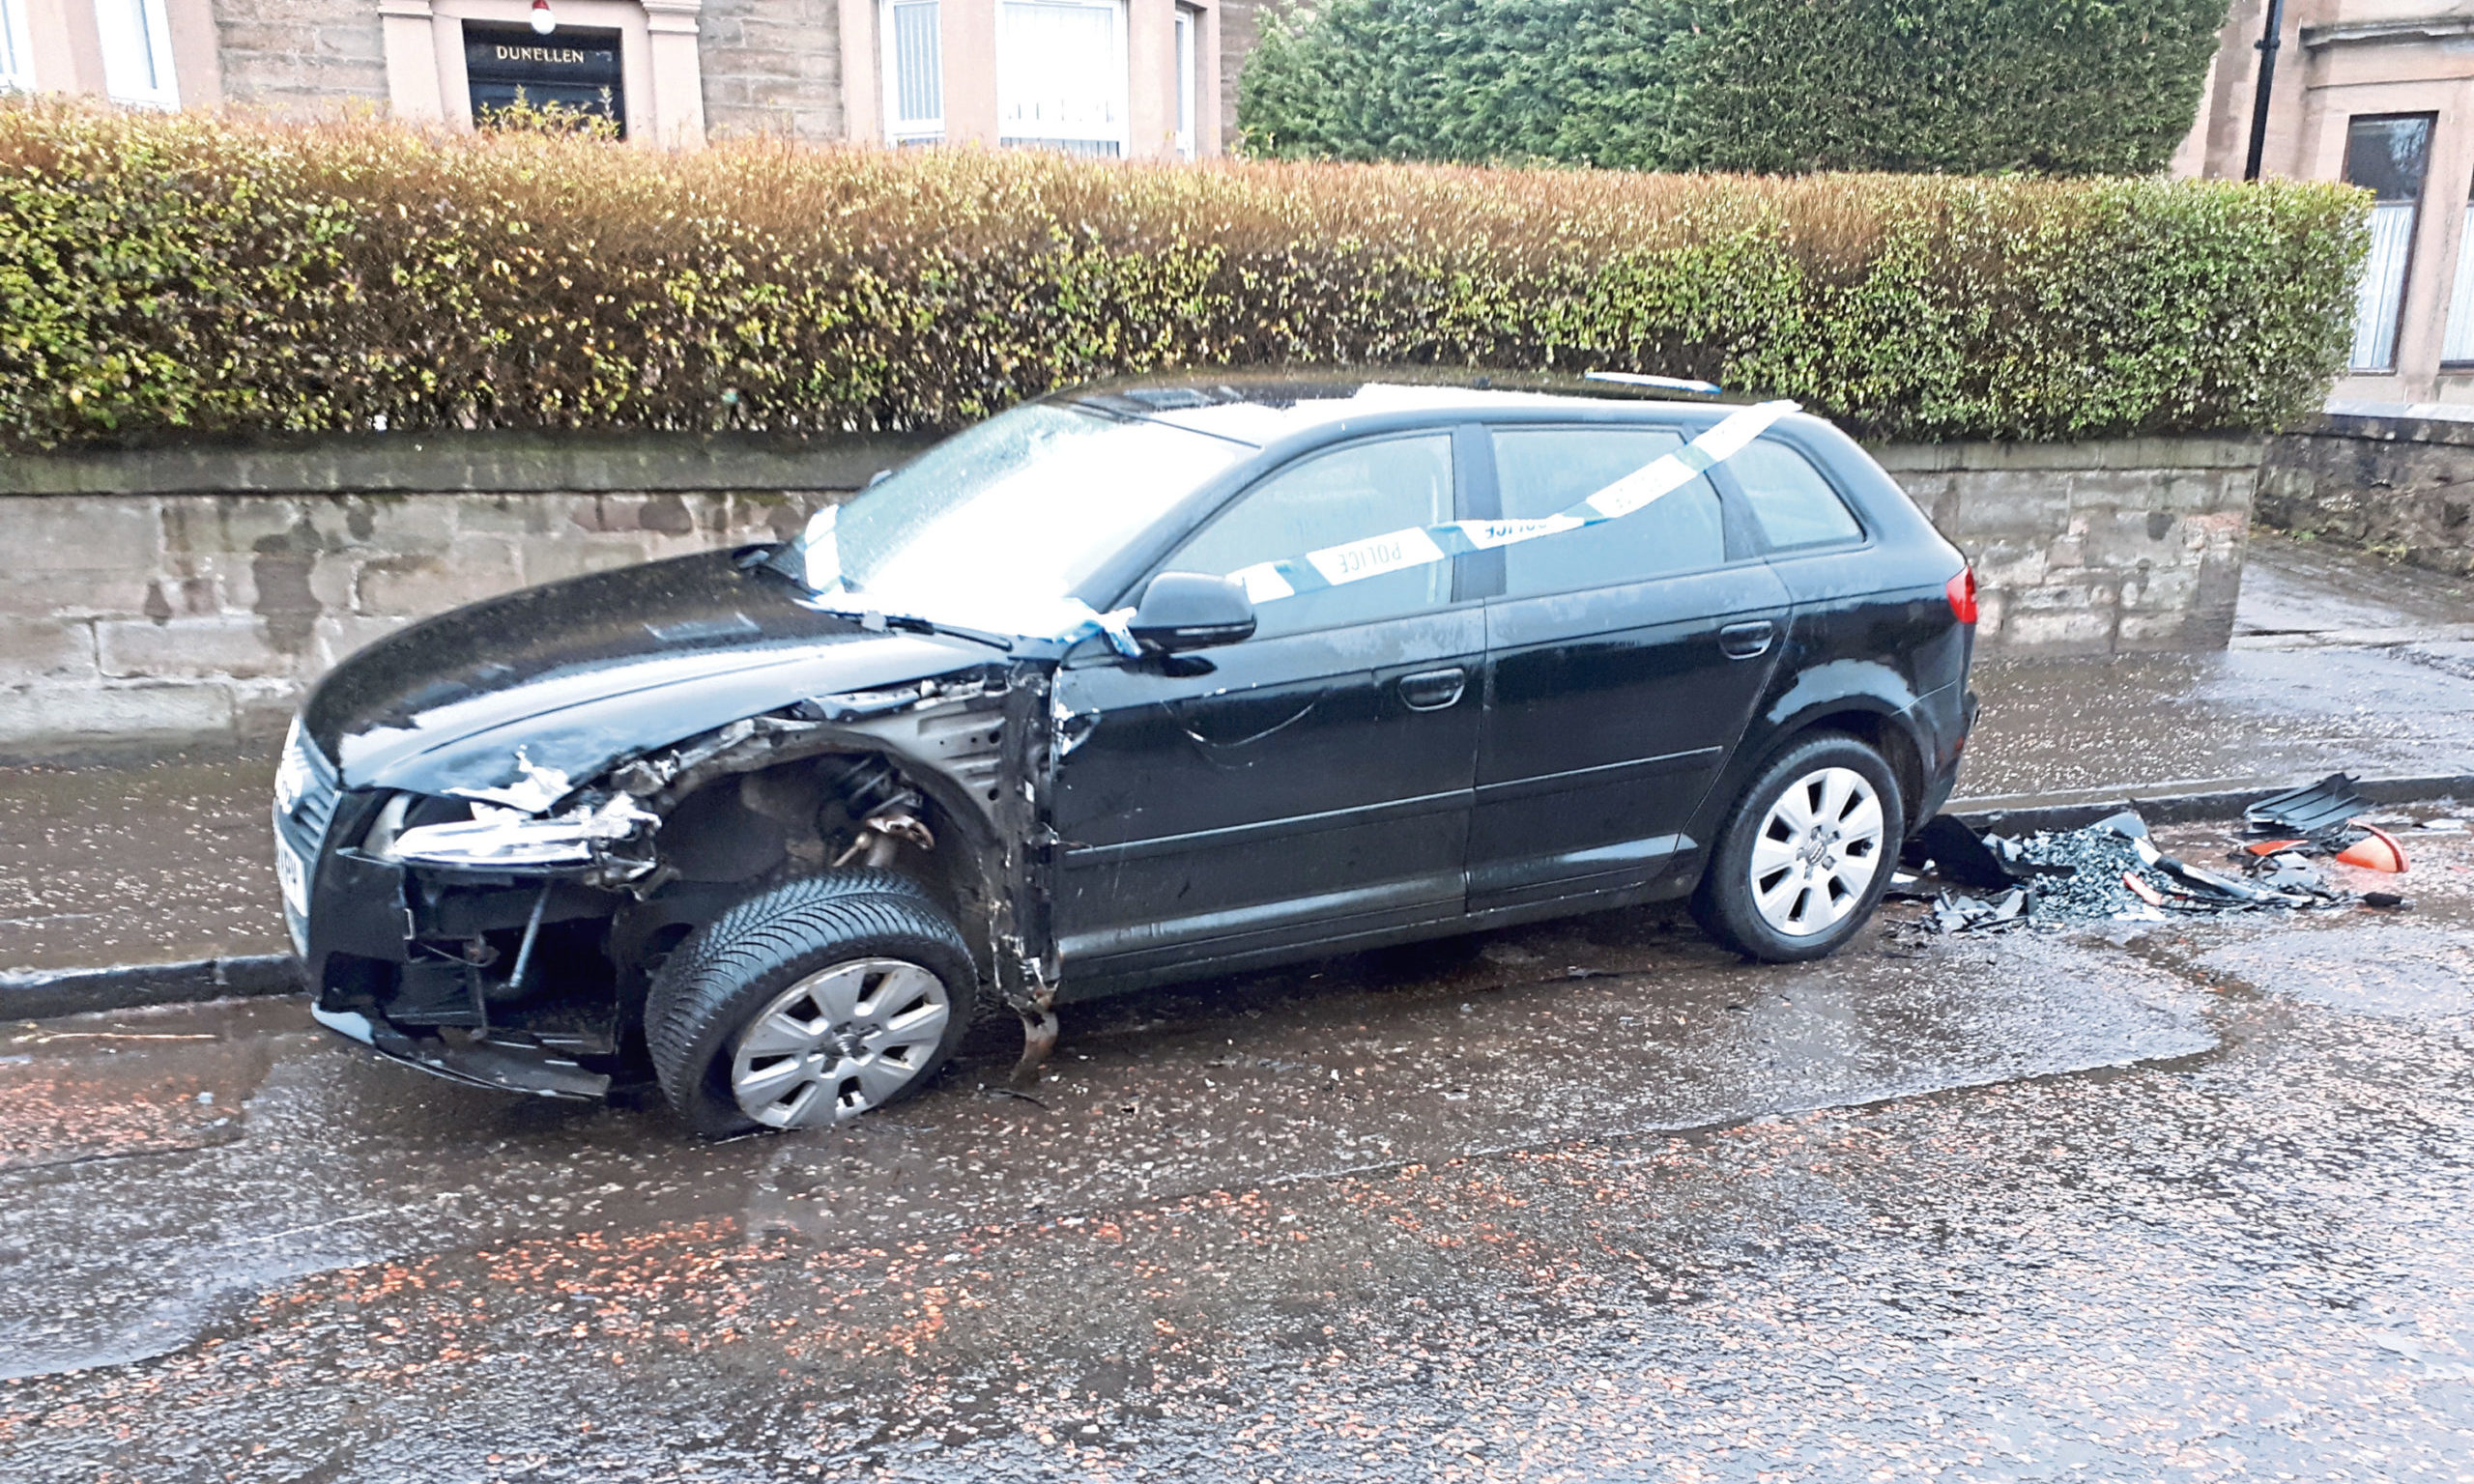 The damaged Audi on Clepington Road.